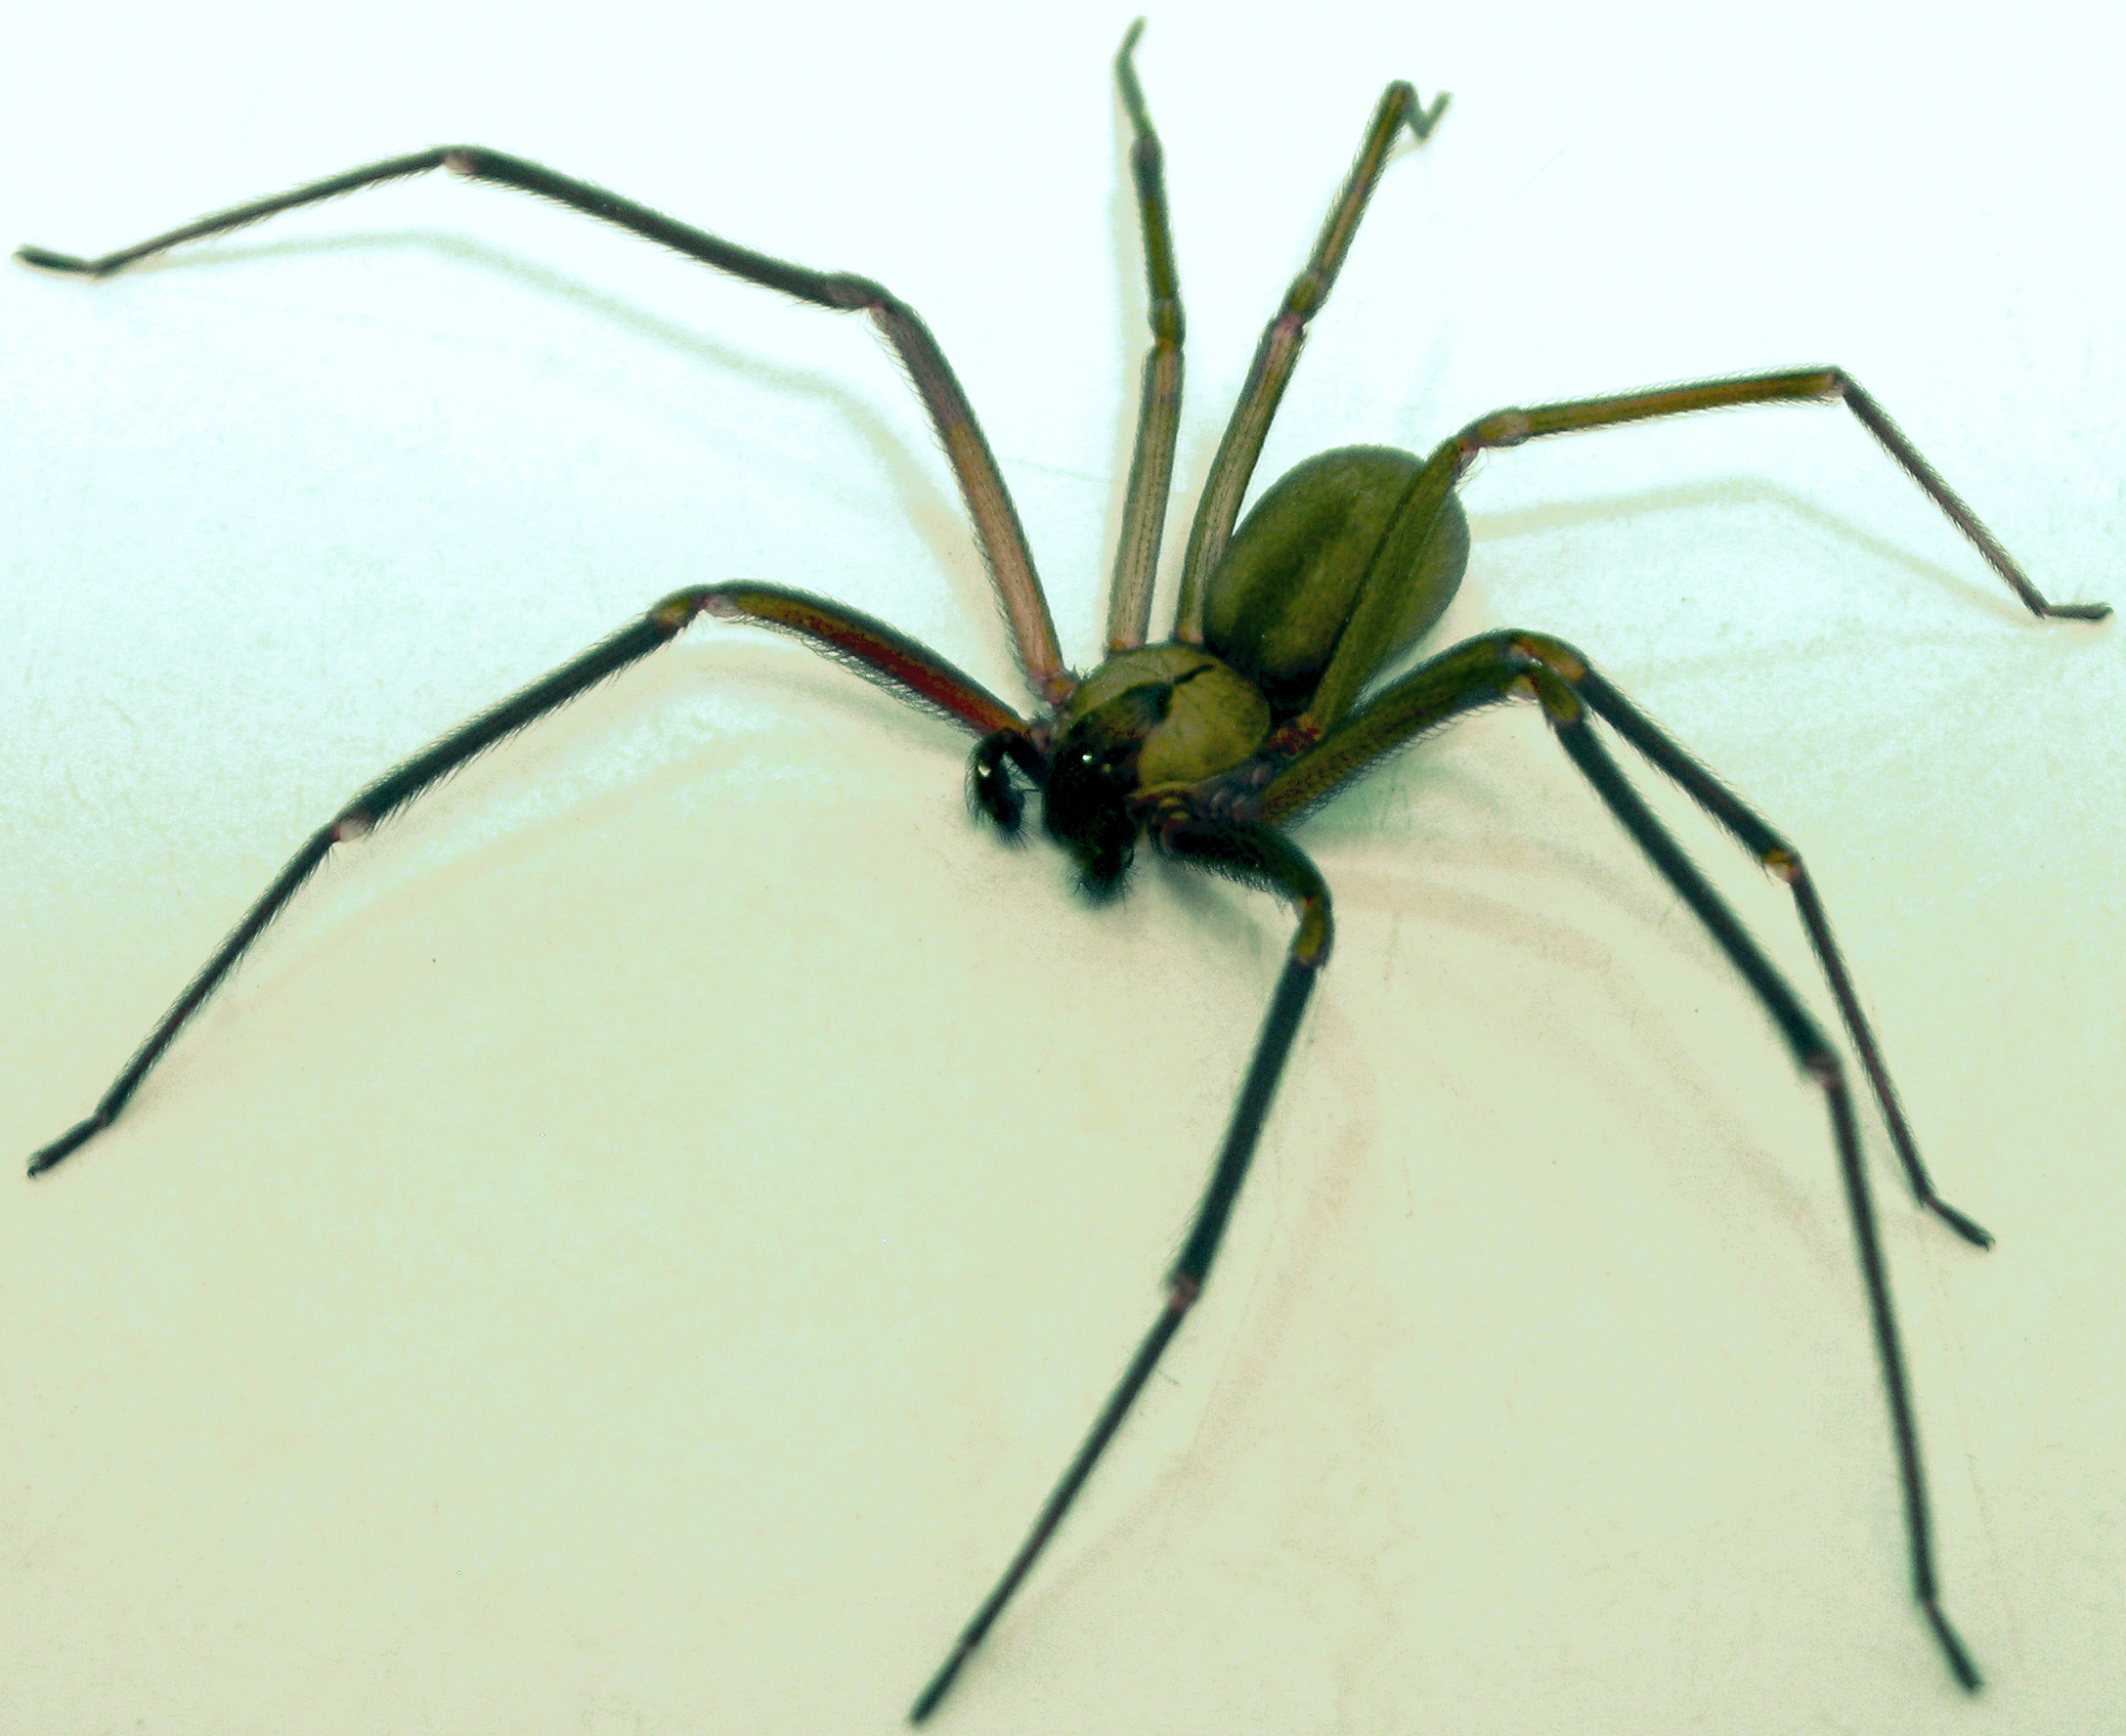 brown recluse images - HD2175×1776